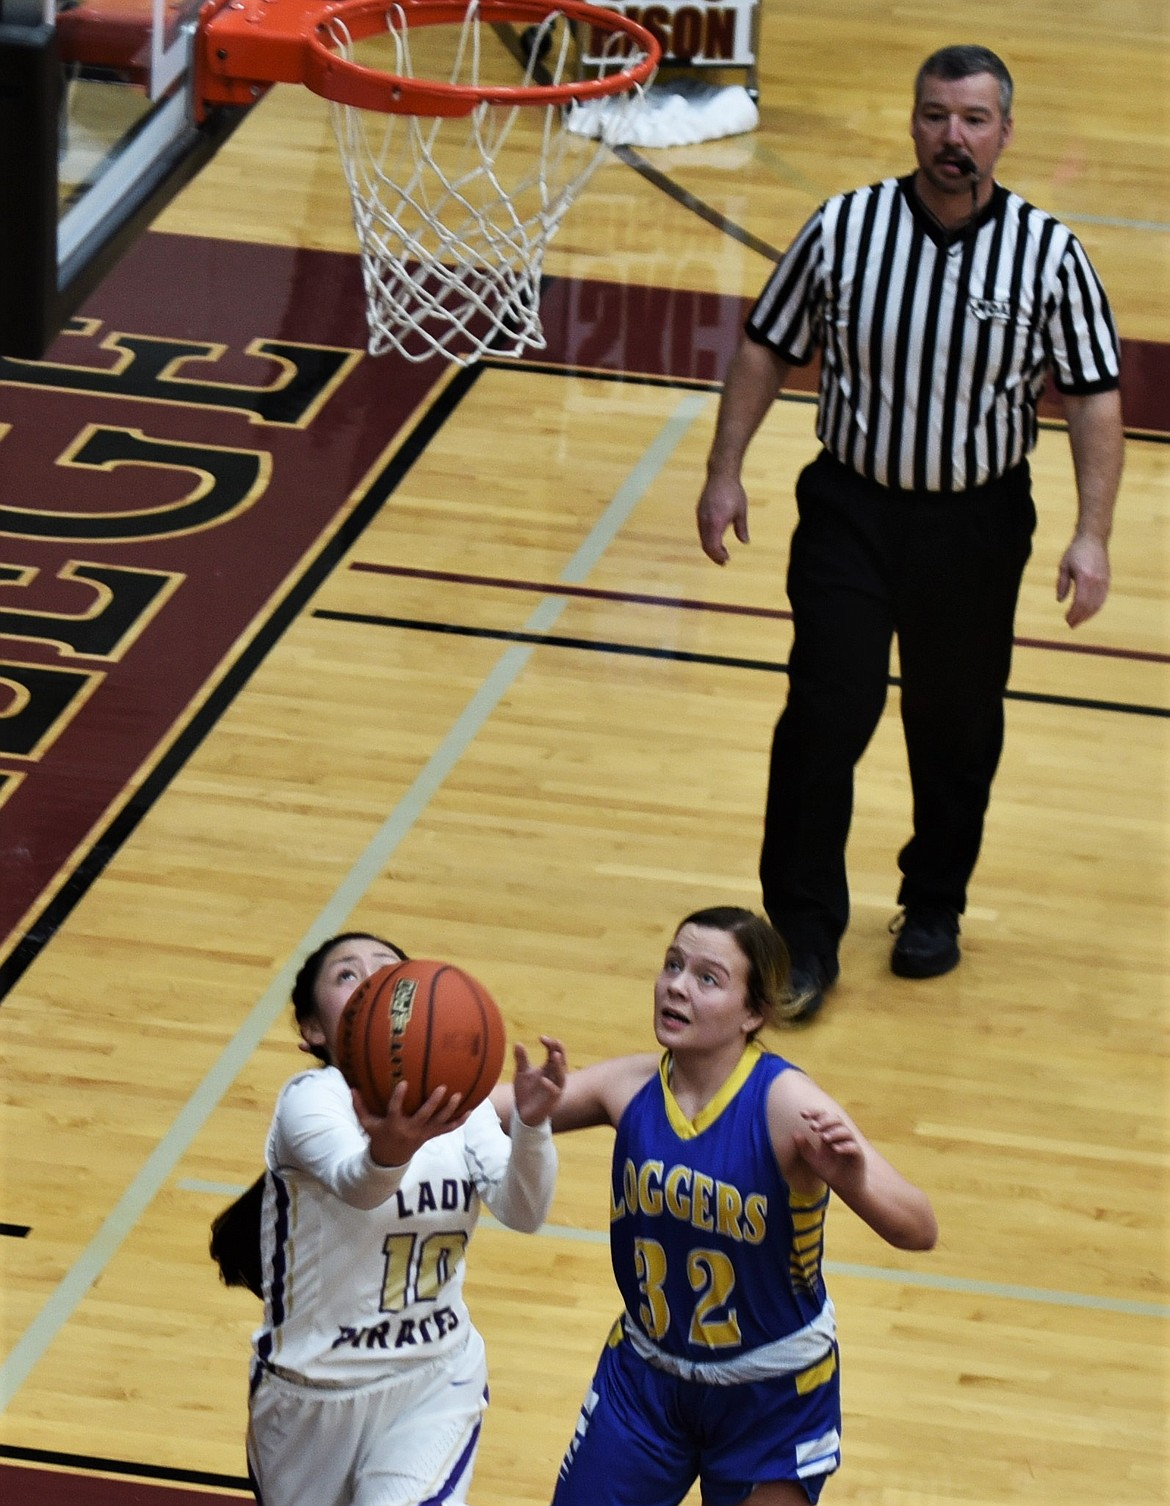 Jaivin Bad Bear puts up a reverse layup Saturday as Libby's Kinzee Boehmler defends. (Scot Heisel/Lake County Leader)